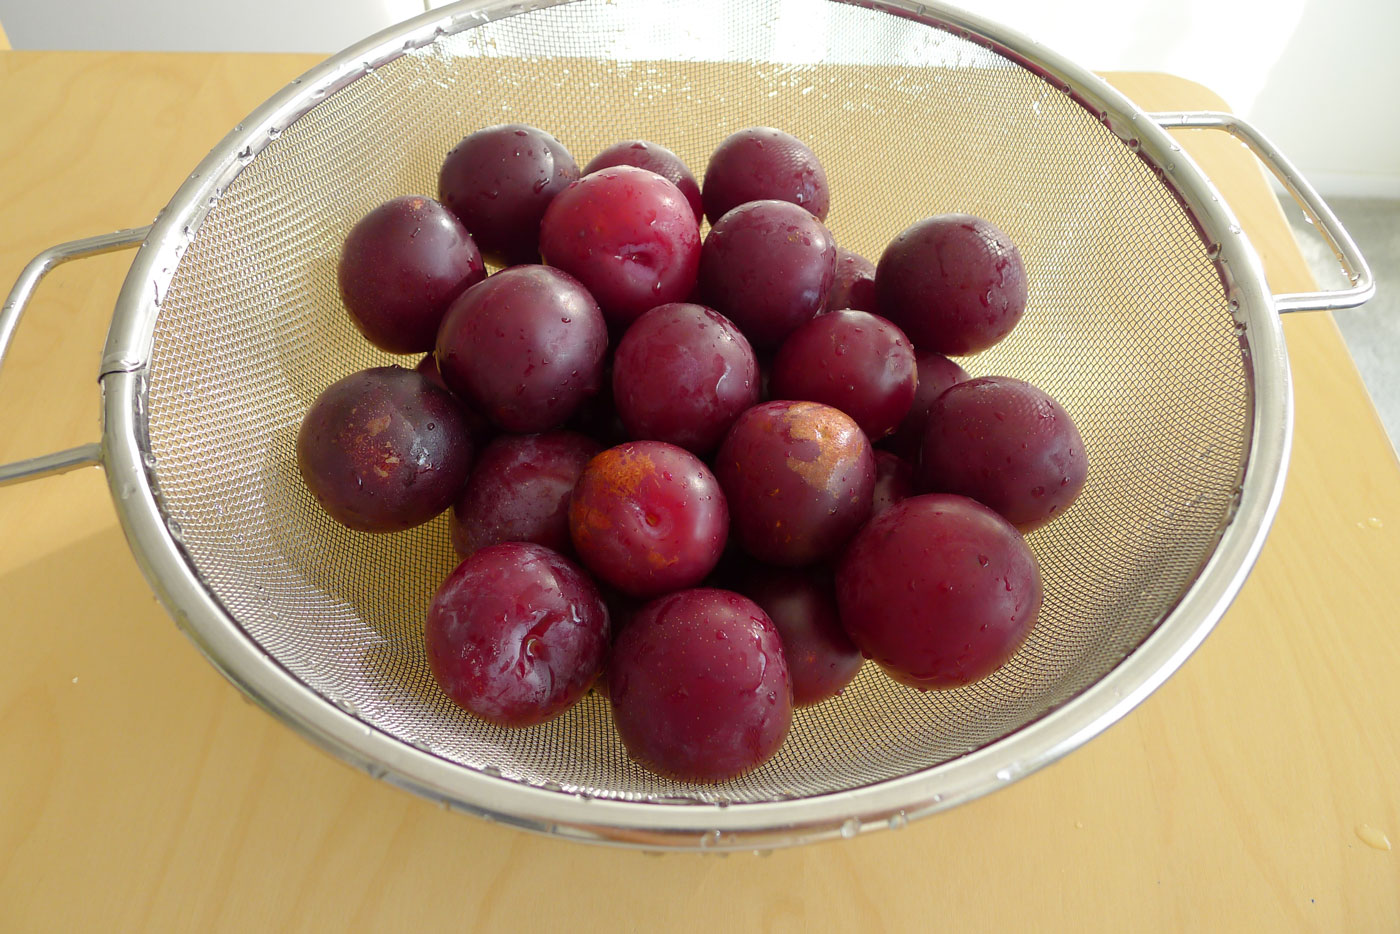 a gift from the neighbors: plums